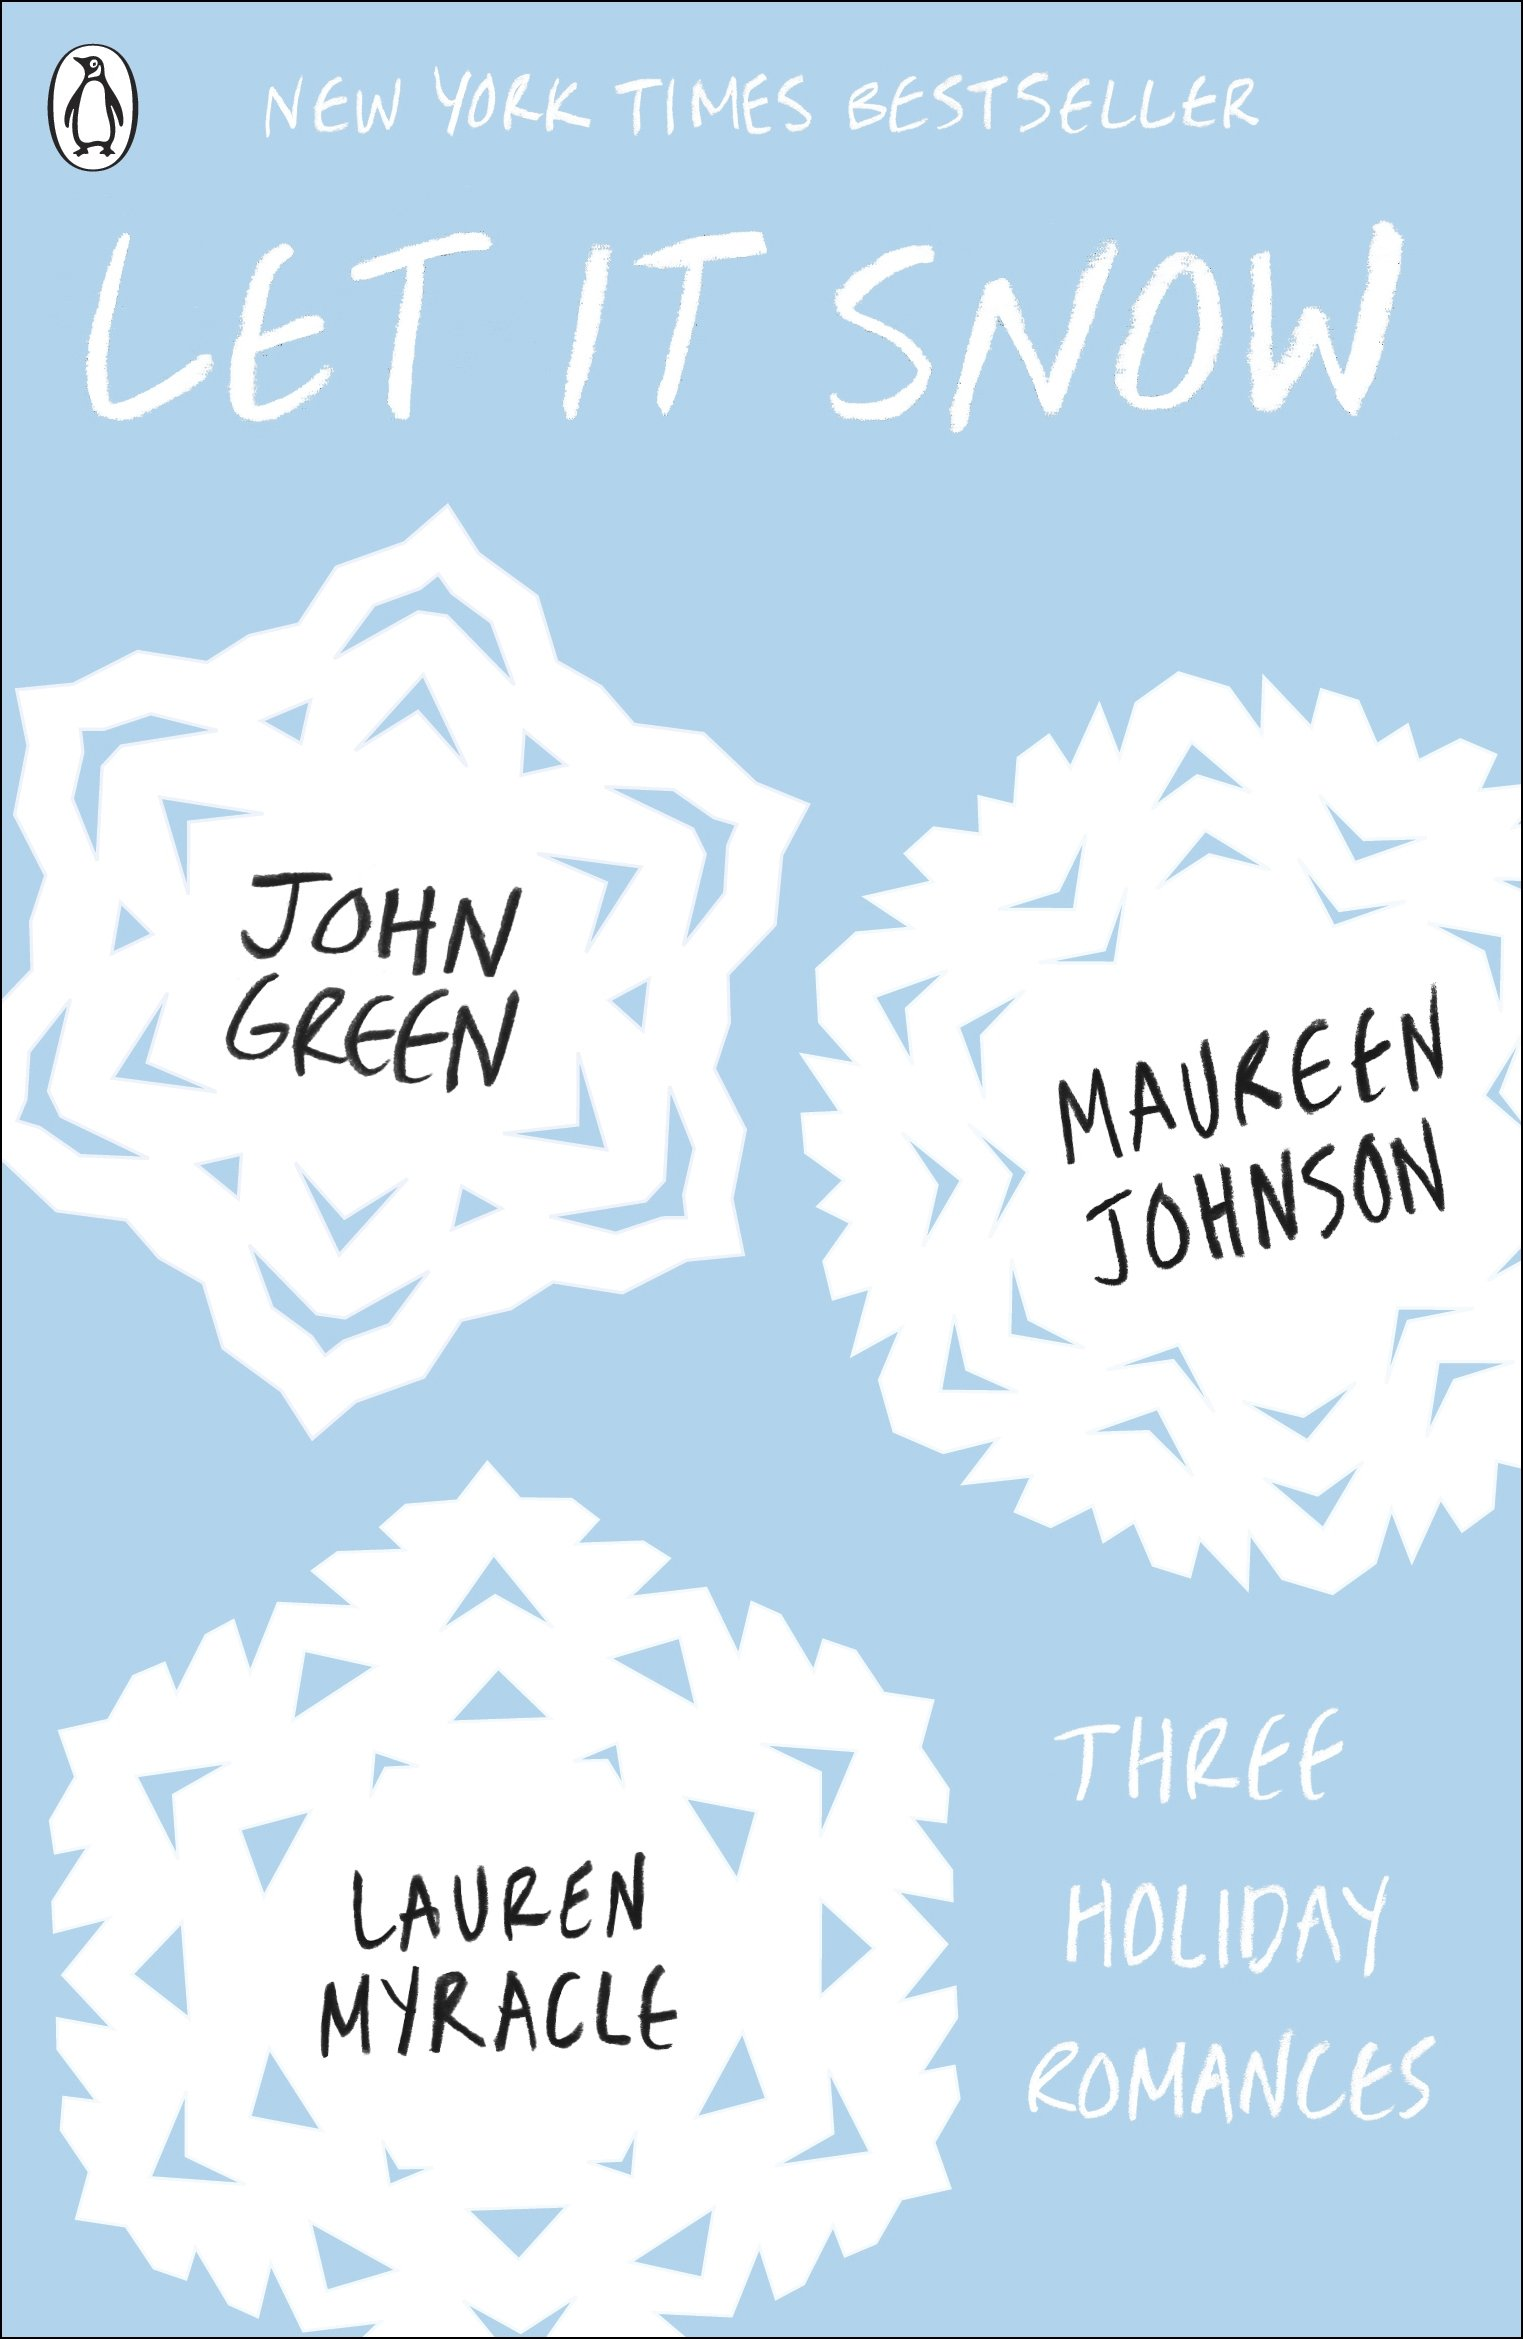 Let It Snow Book Cover at http://www.amazon.in/Let-Snow-John-Green/dp/0141349174